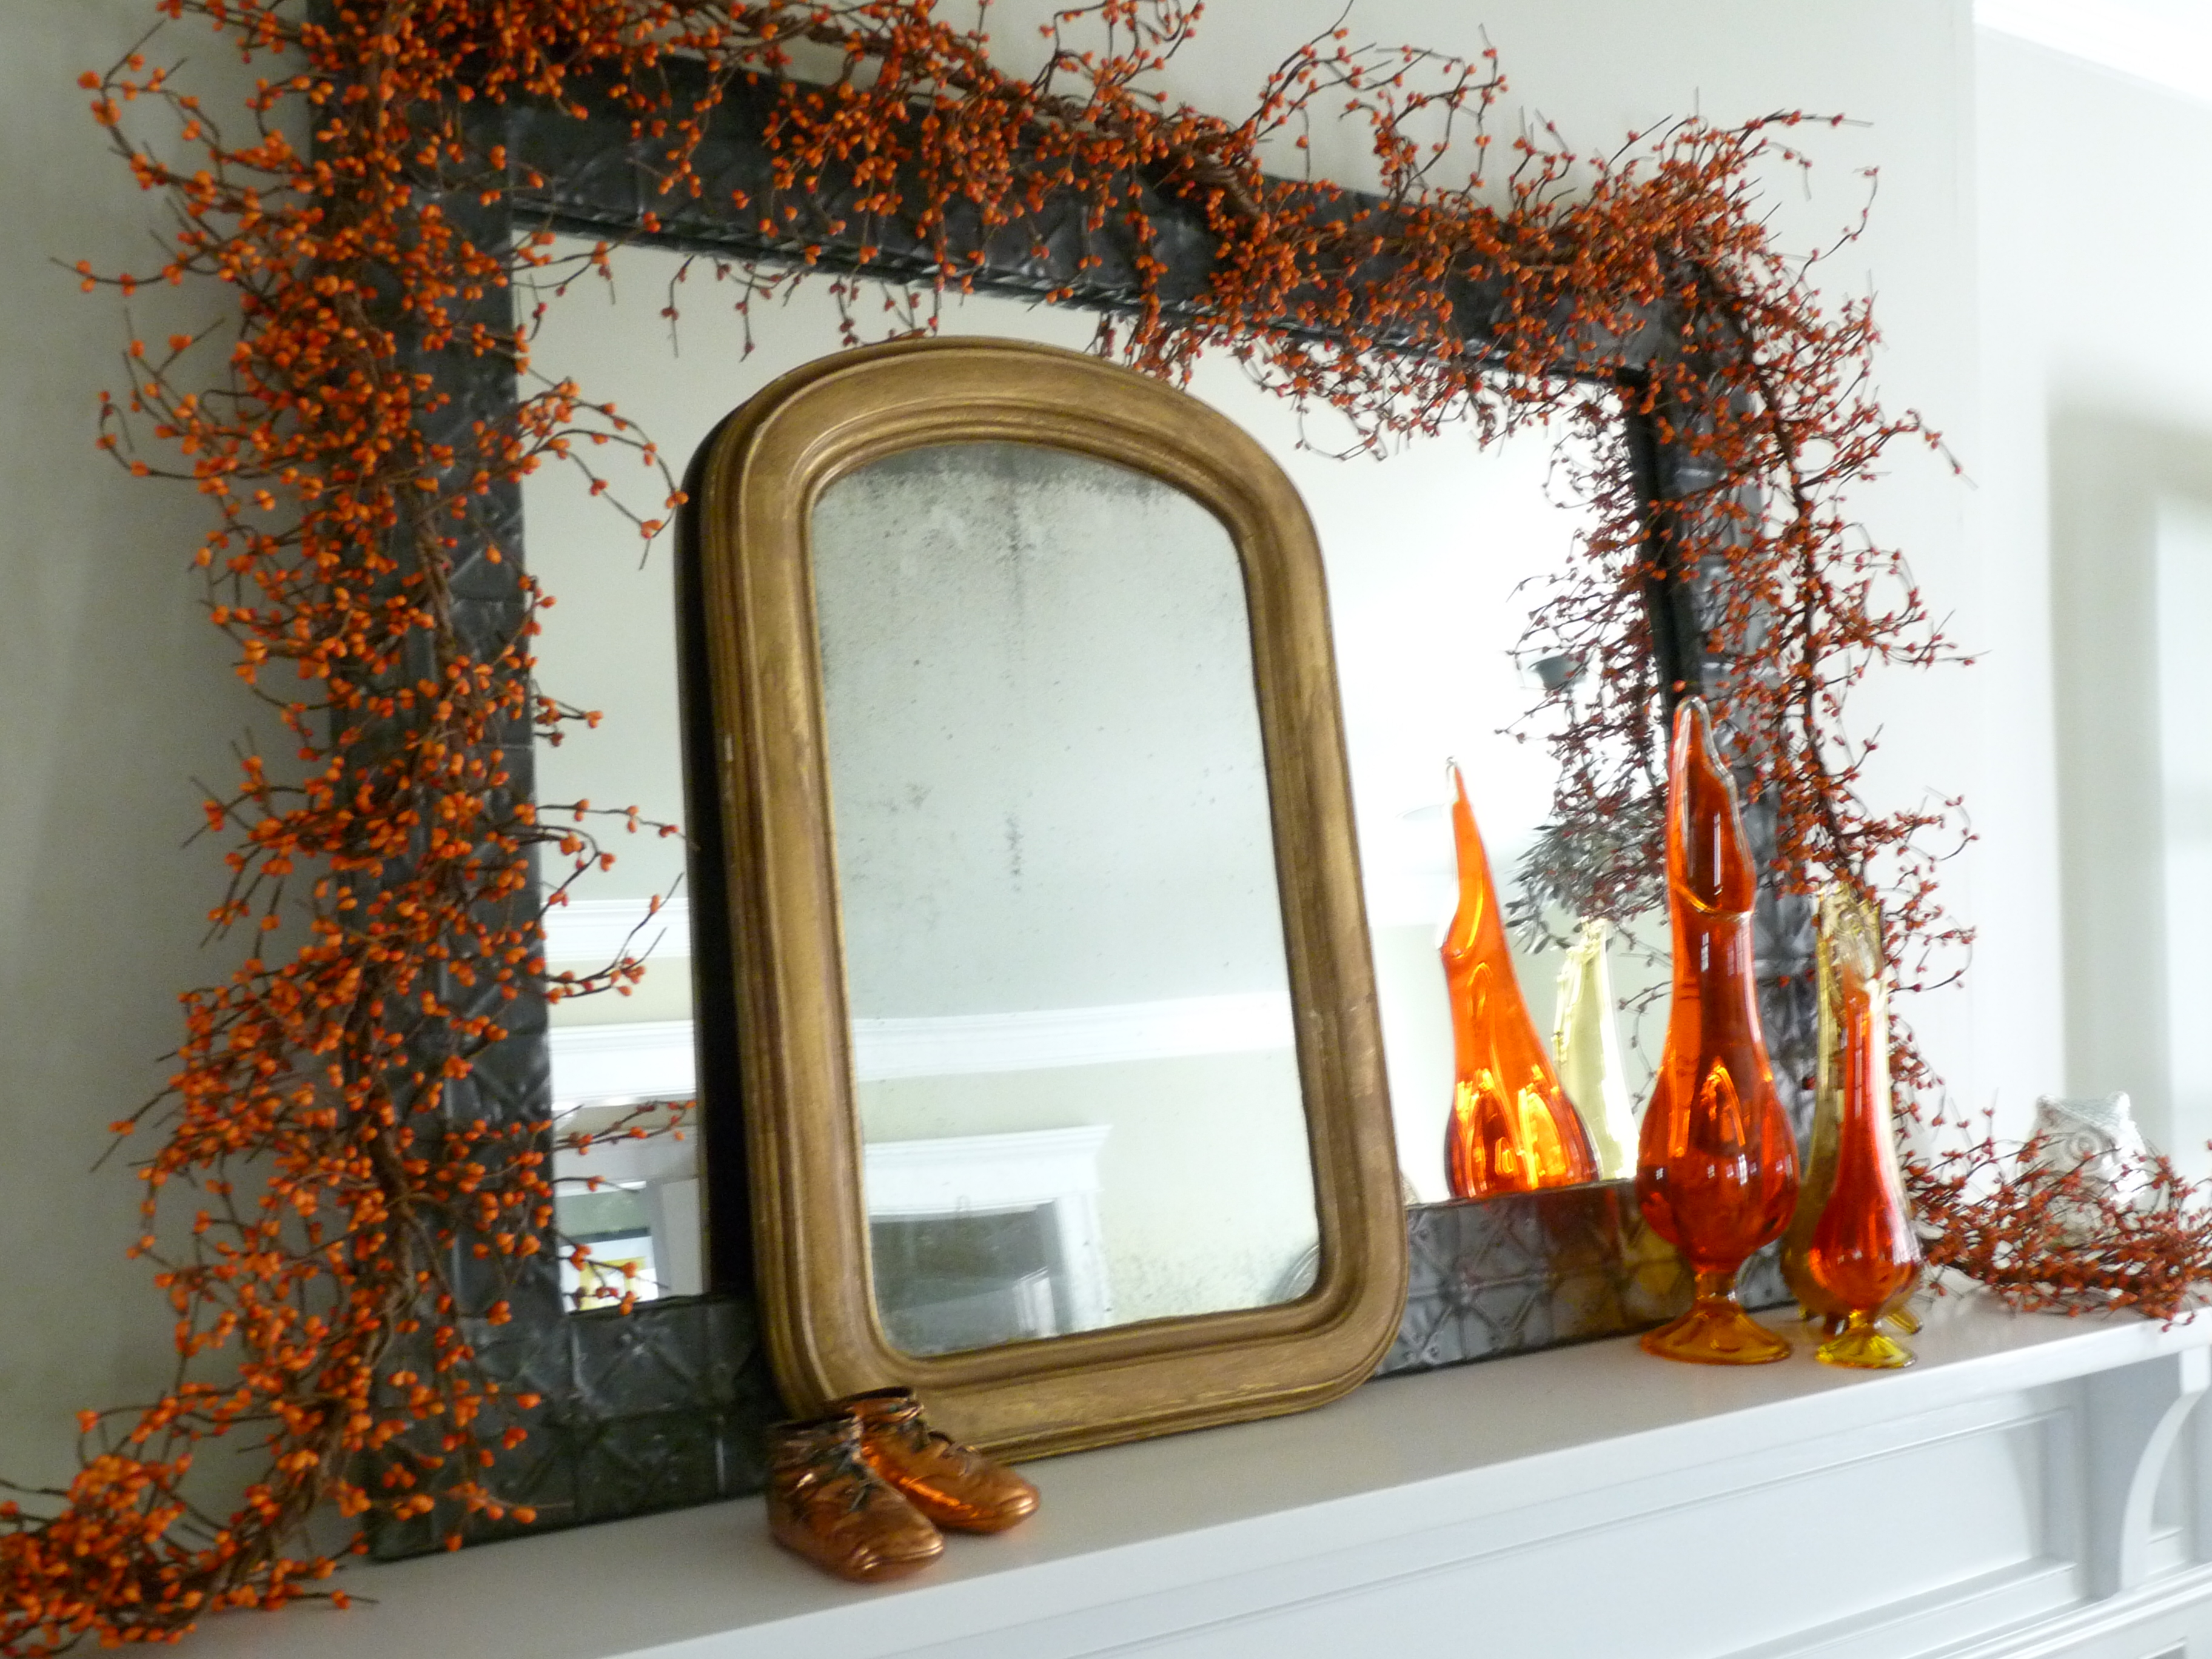 Fall mantel with orange berry garland and vintage mirrors kellyelko.com #falldecor #falldecorating #vintagedecor #fallmantel